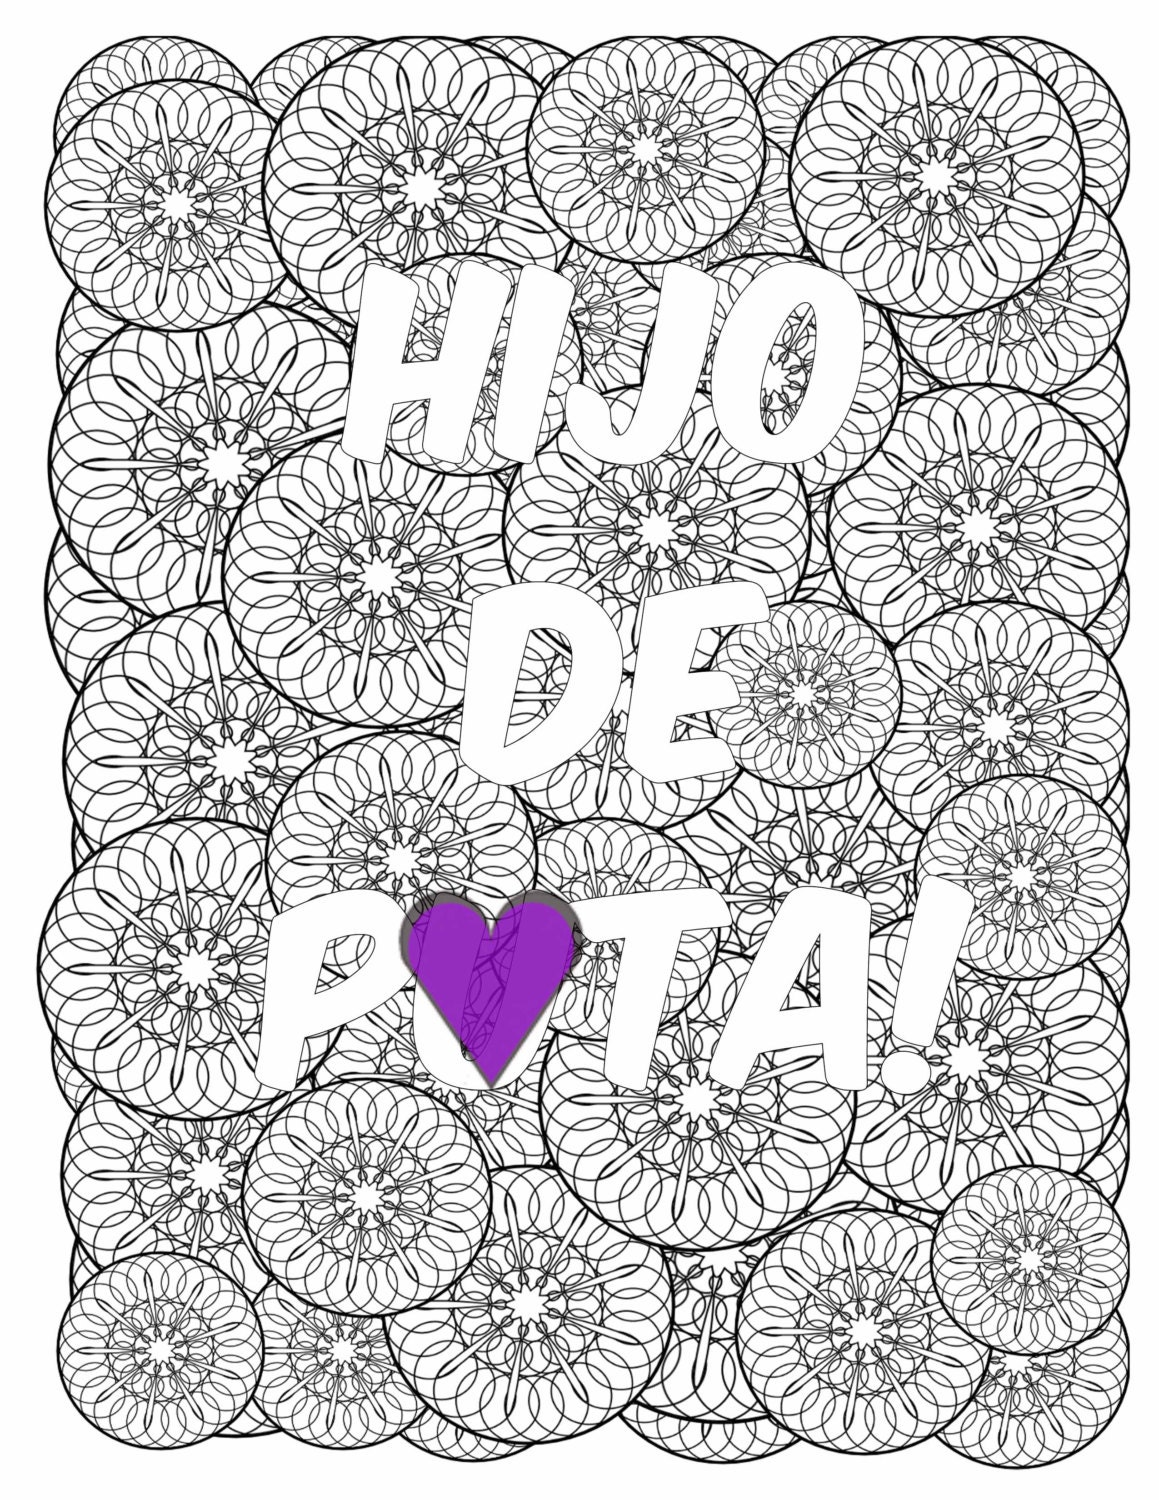 Swearing colouring in book nz - Hijo De Puta Son Of A B Tch Mandala Spanish Profanity Adult Coloring Page Instant Download Swear Word Coloring Page